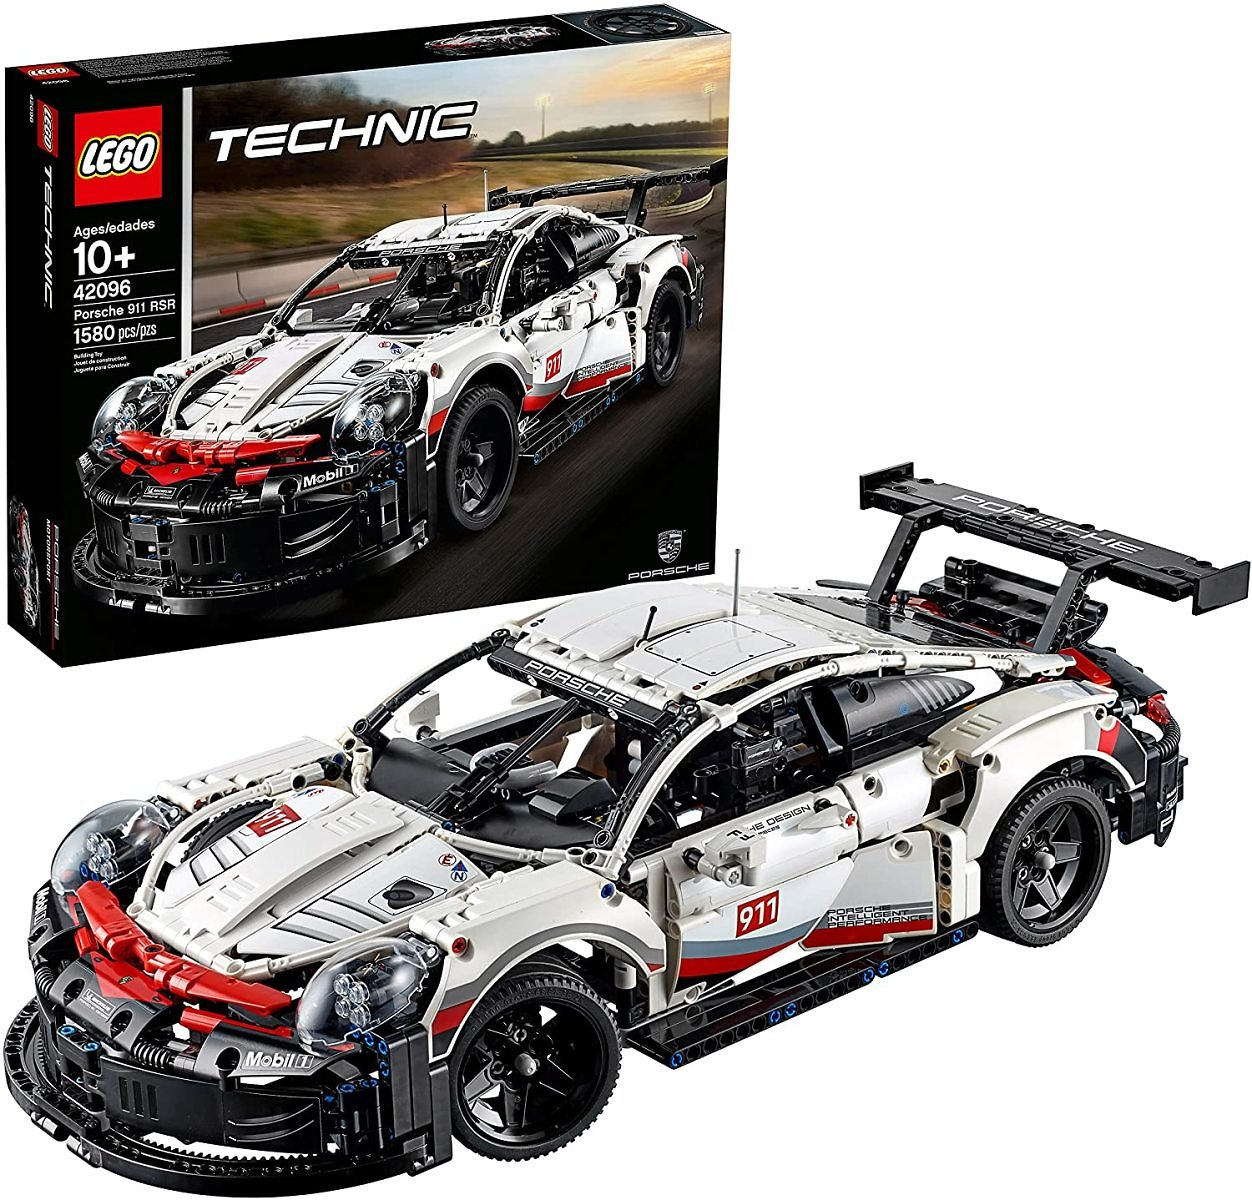 LEGO Technic Porsche Building Set